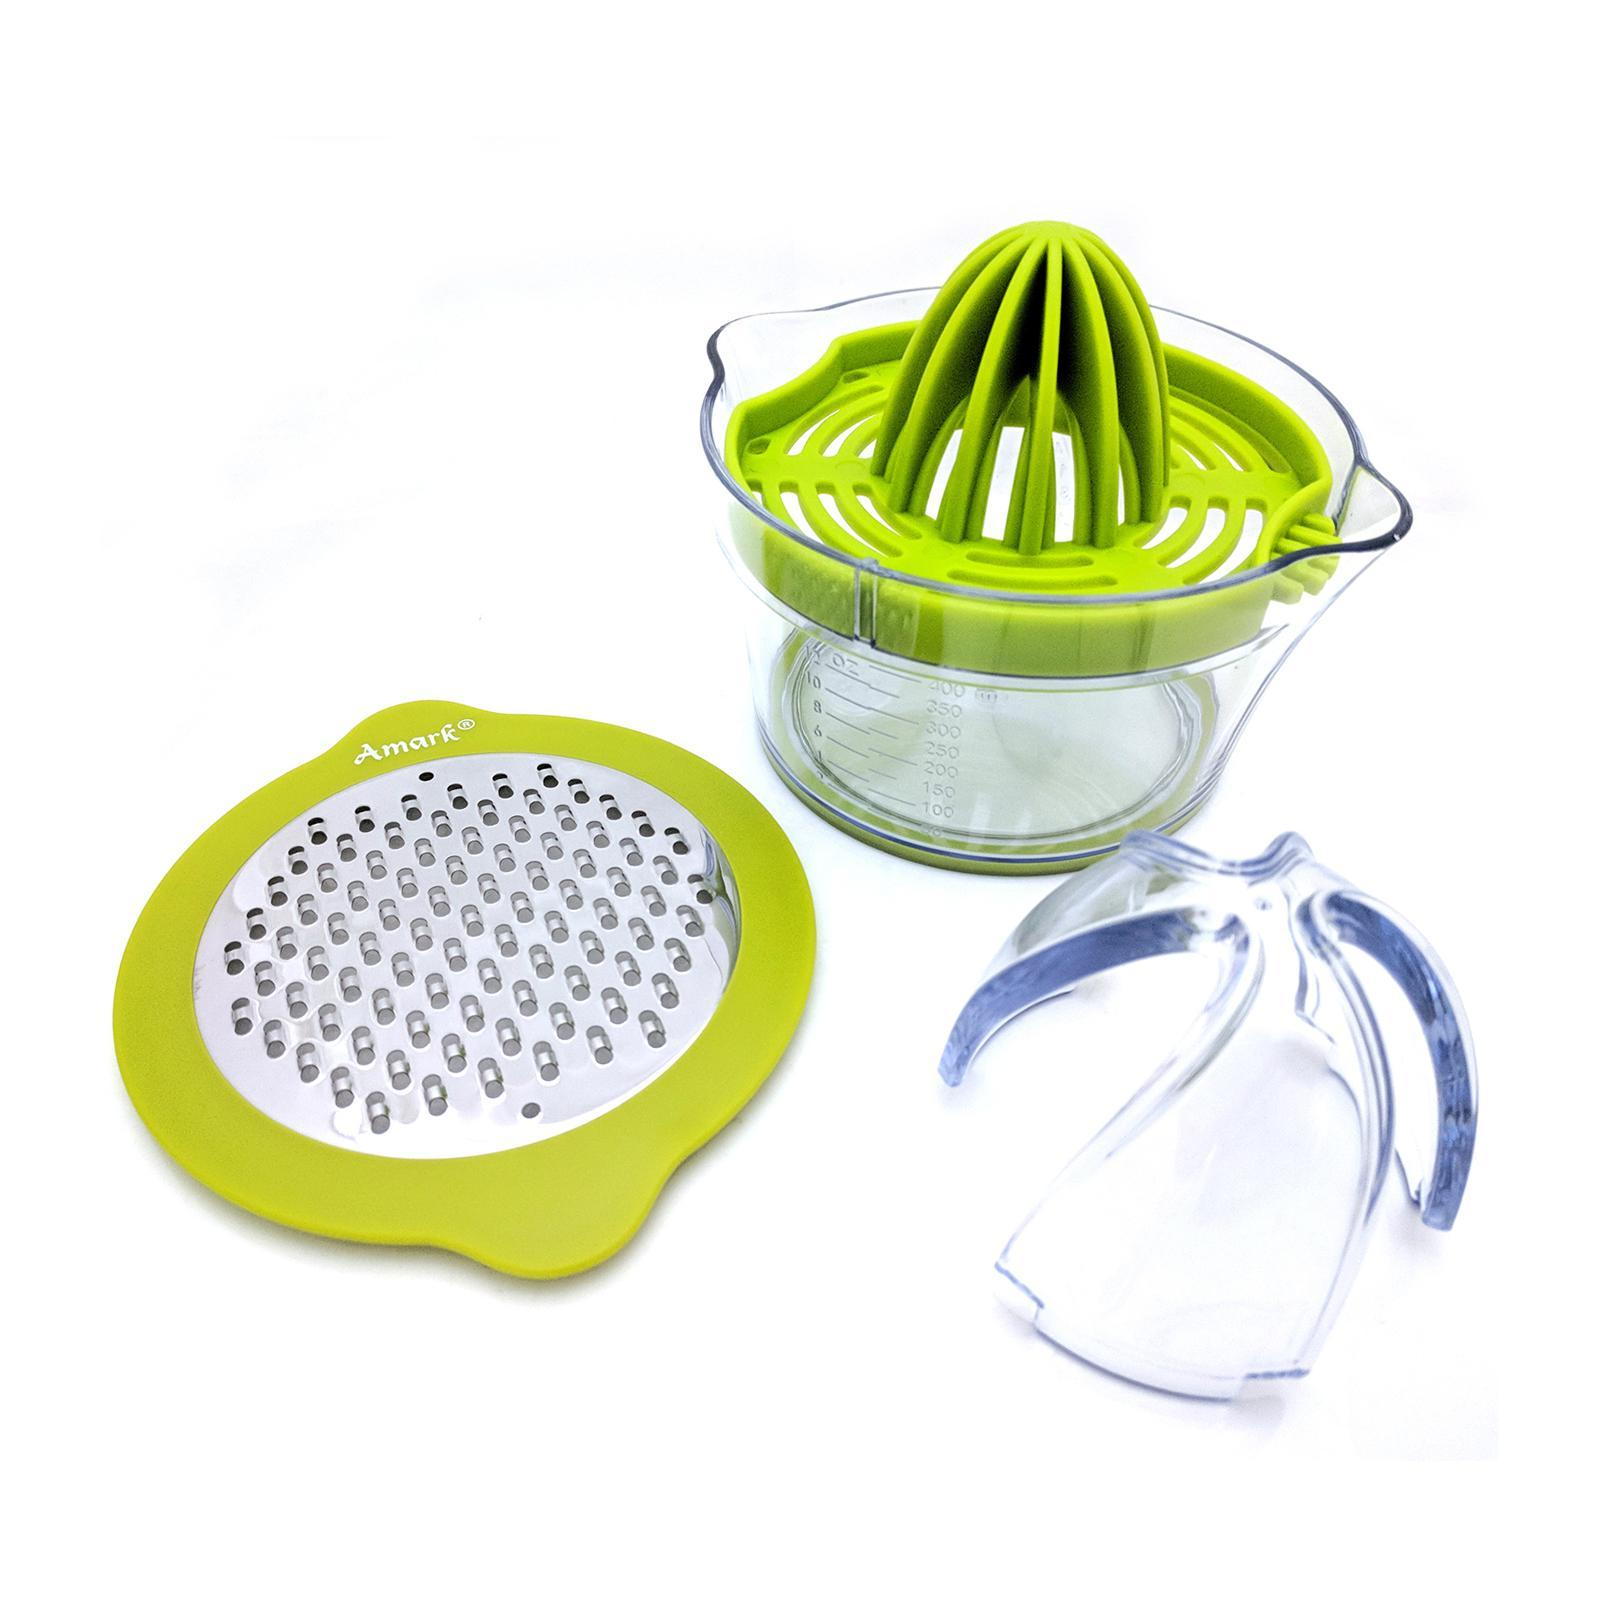 Amark Multifunction 4-In-1 Juicer And Grater